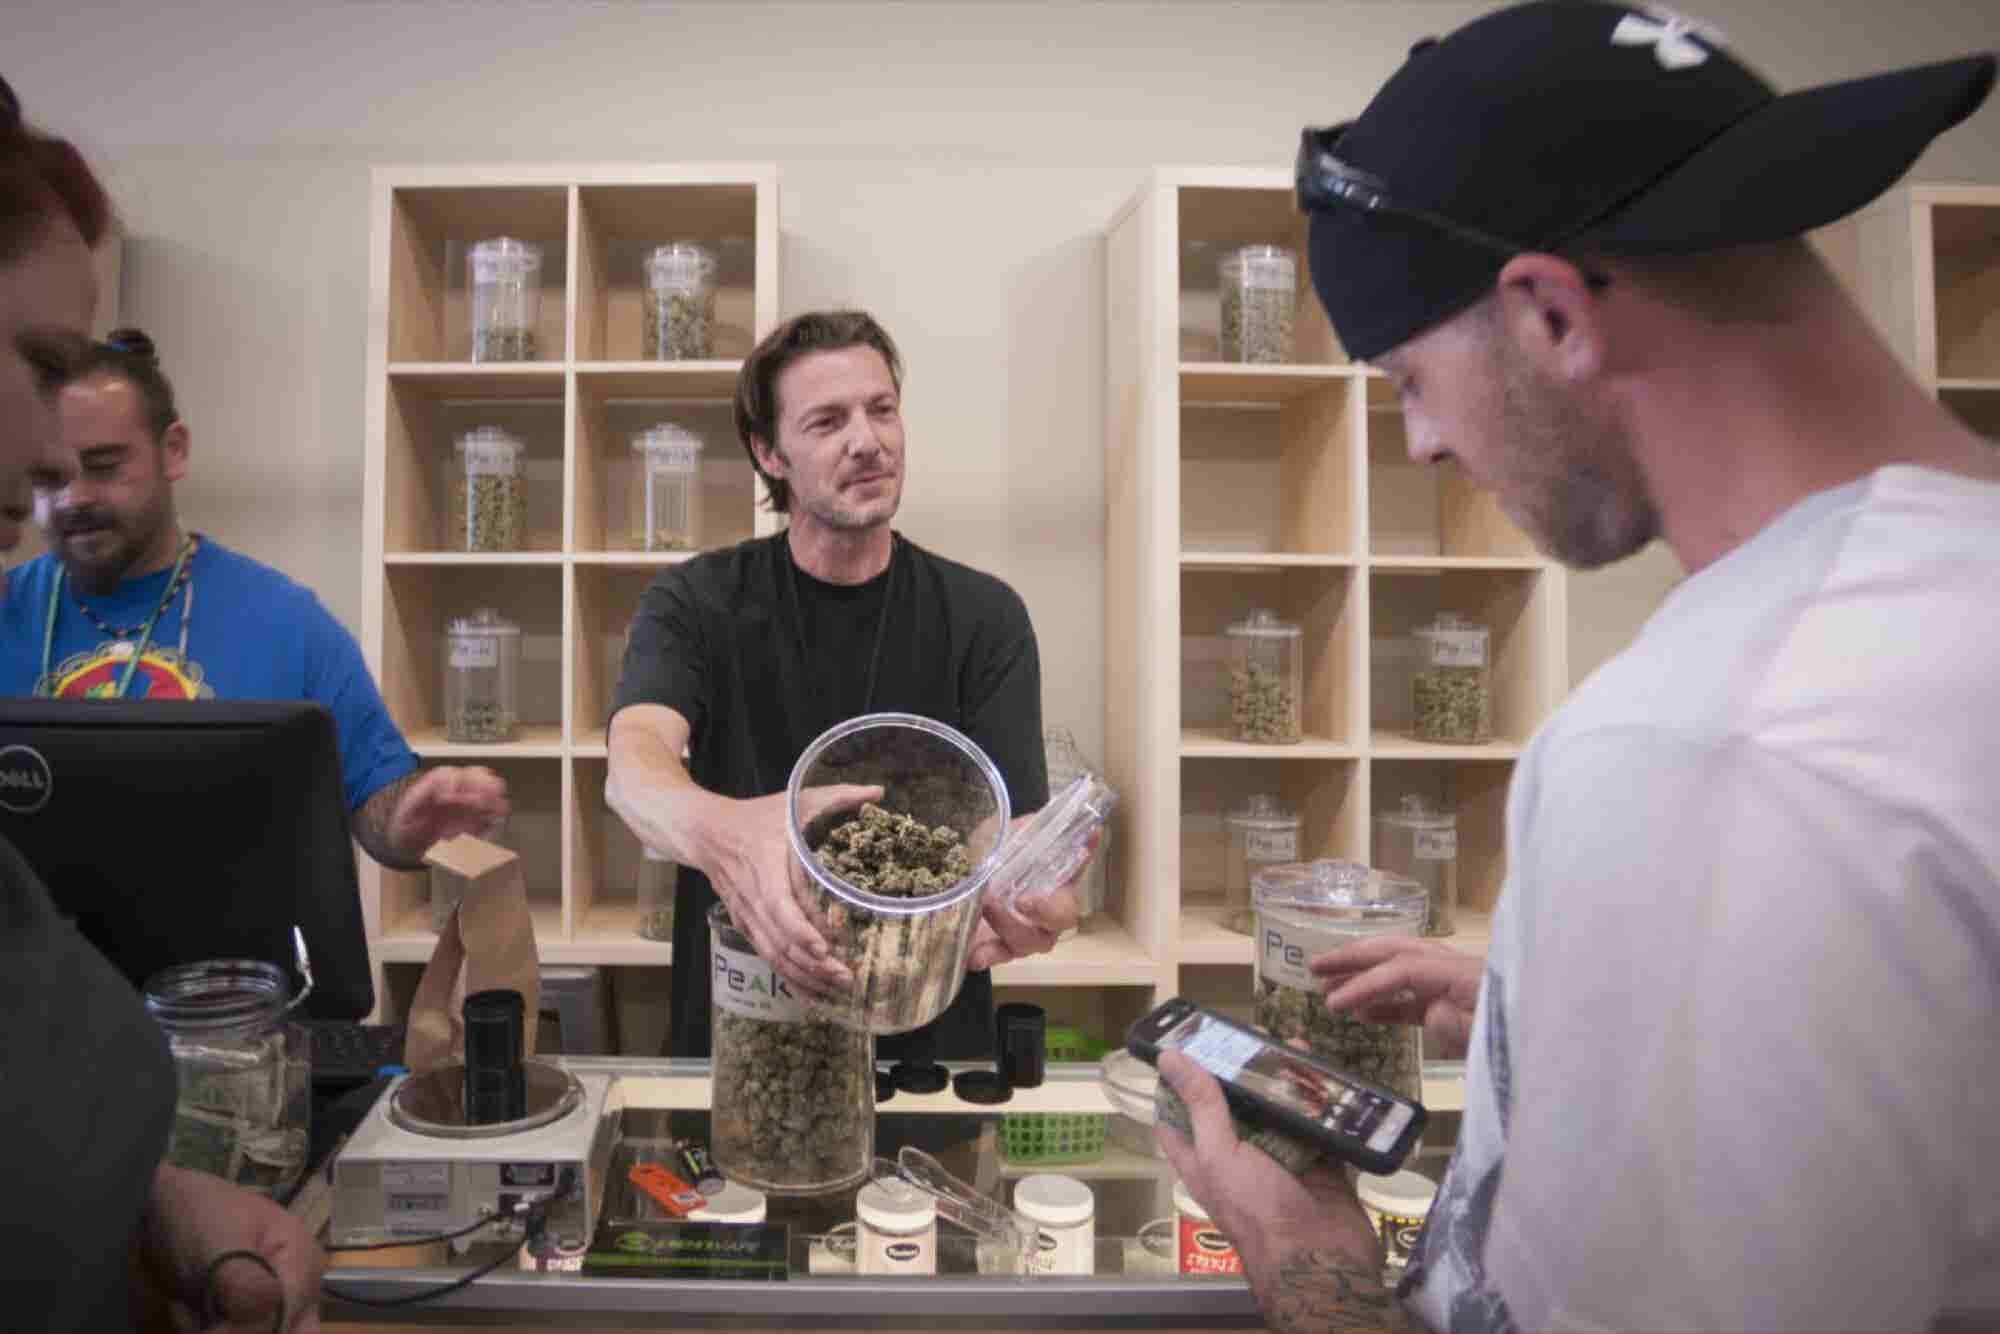 Branding Your Business and Crafting Your Story in the Cannabis Industry